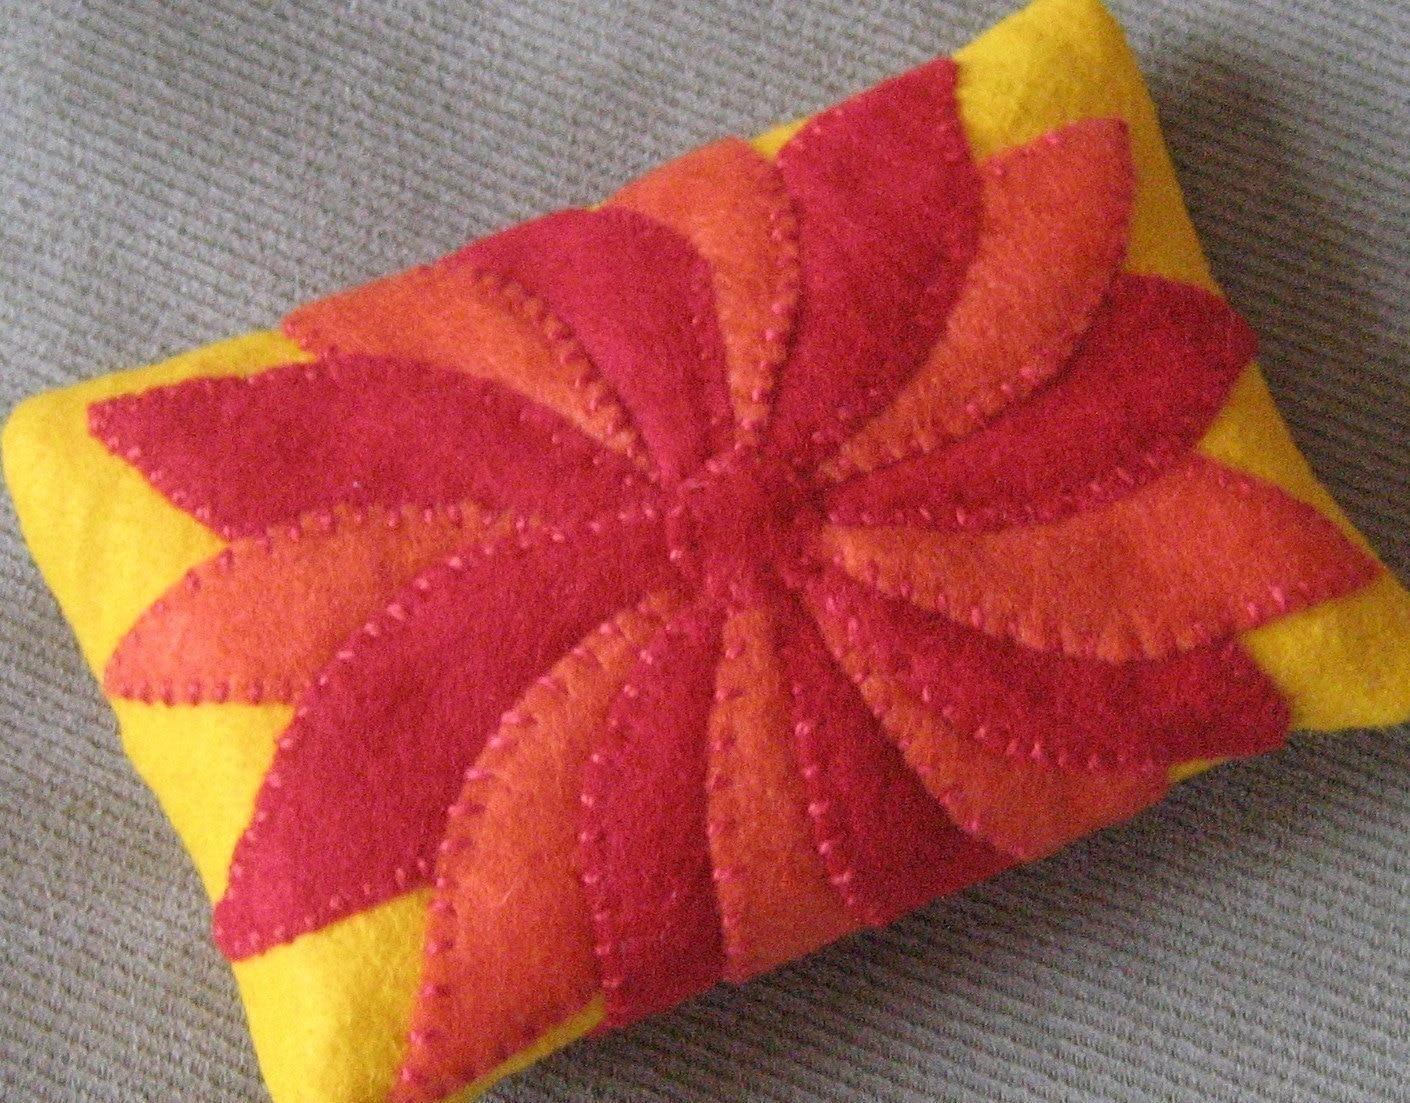 Red and Orange Pinwheel Flower on Yellow Tissue Cozy - FELTITNYC